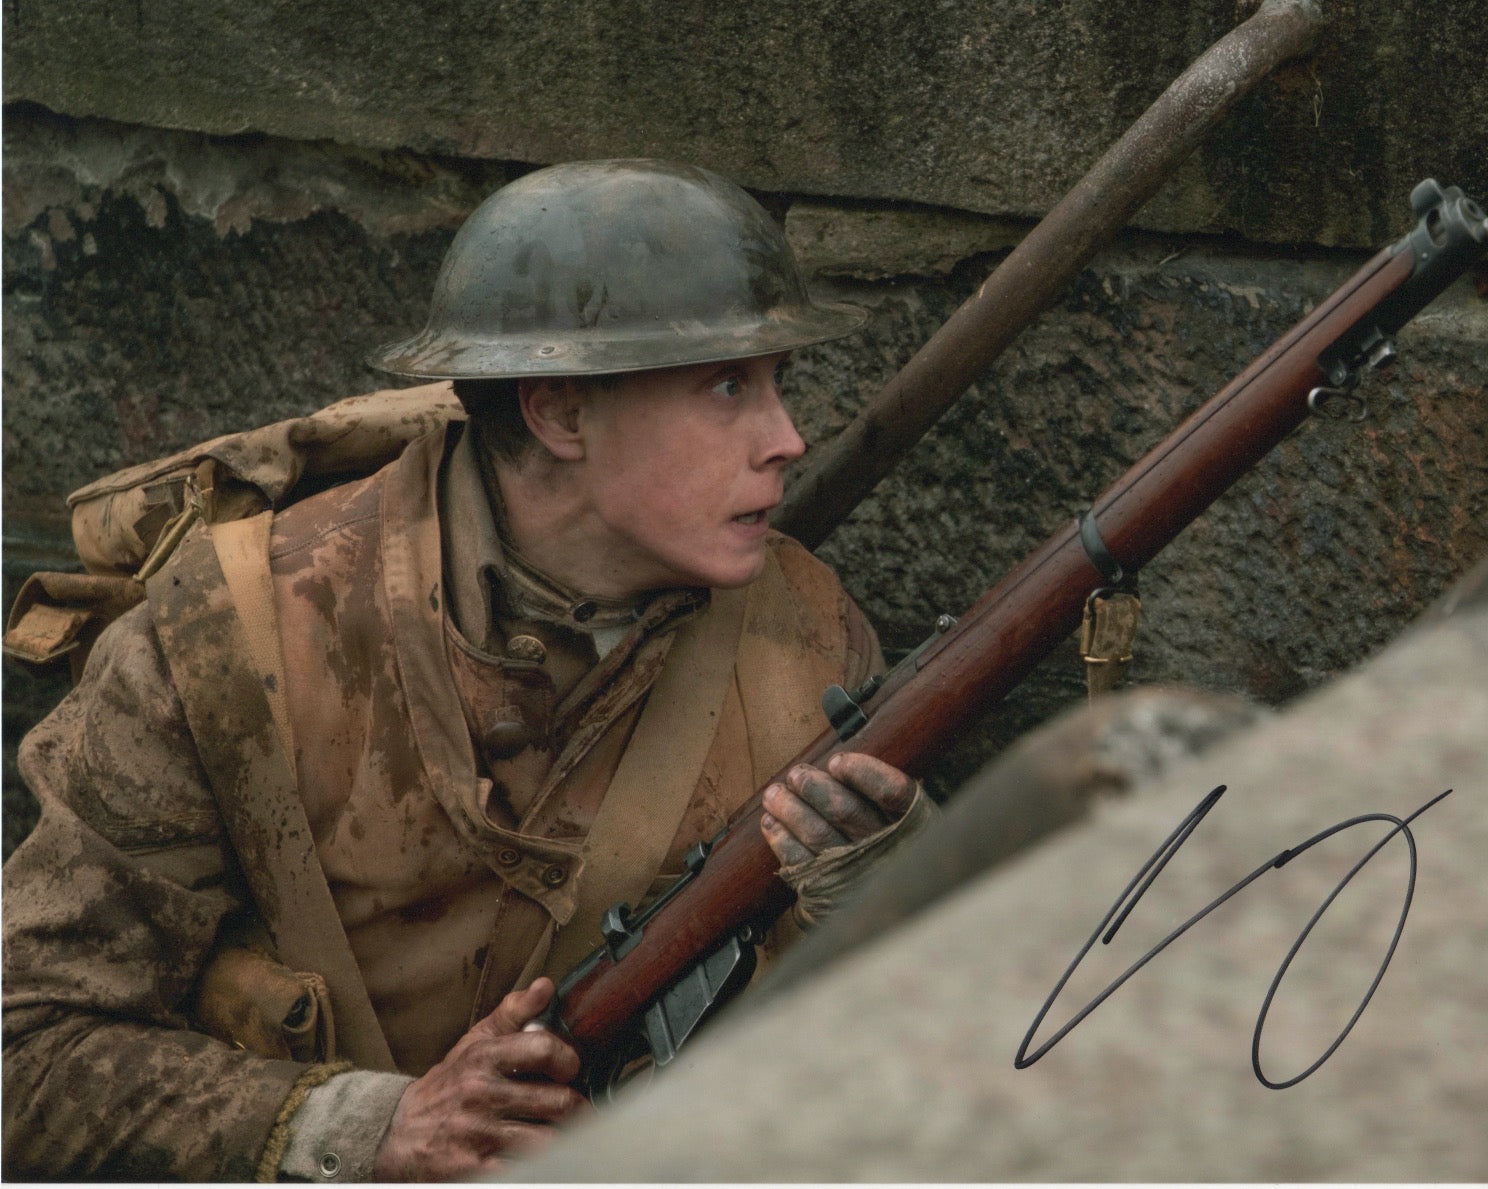 George Mackay 1917 Signed Autograph 8x10 Photo #2 - Outlaw Hobbies Authentic Autographs